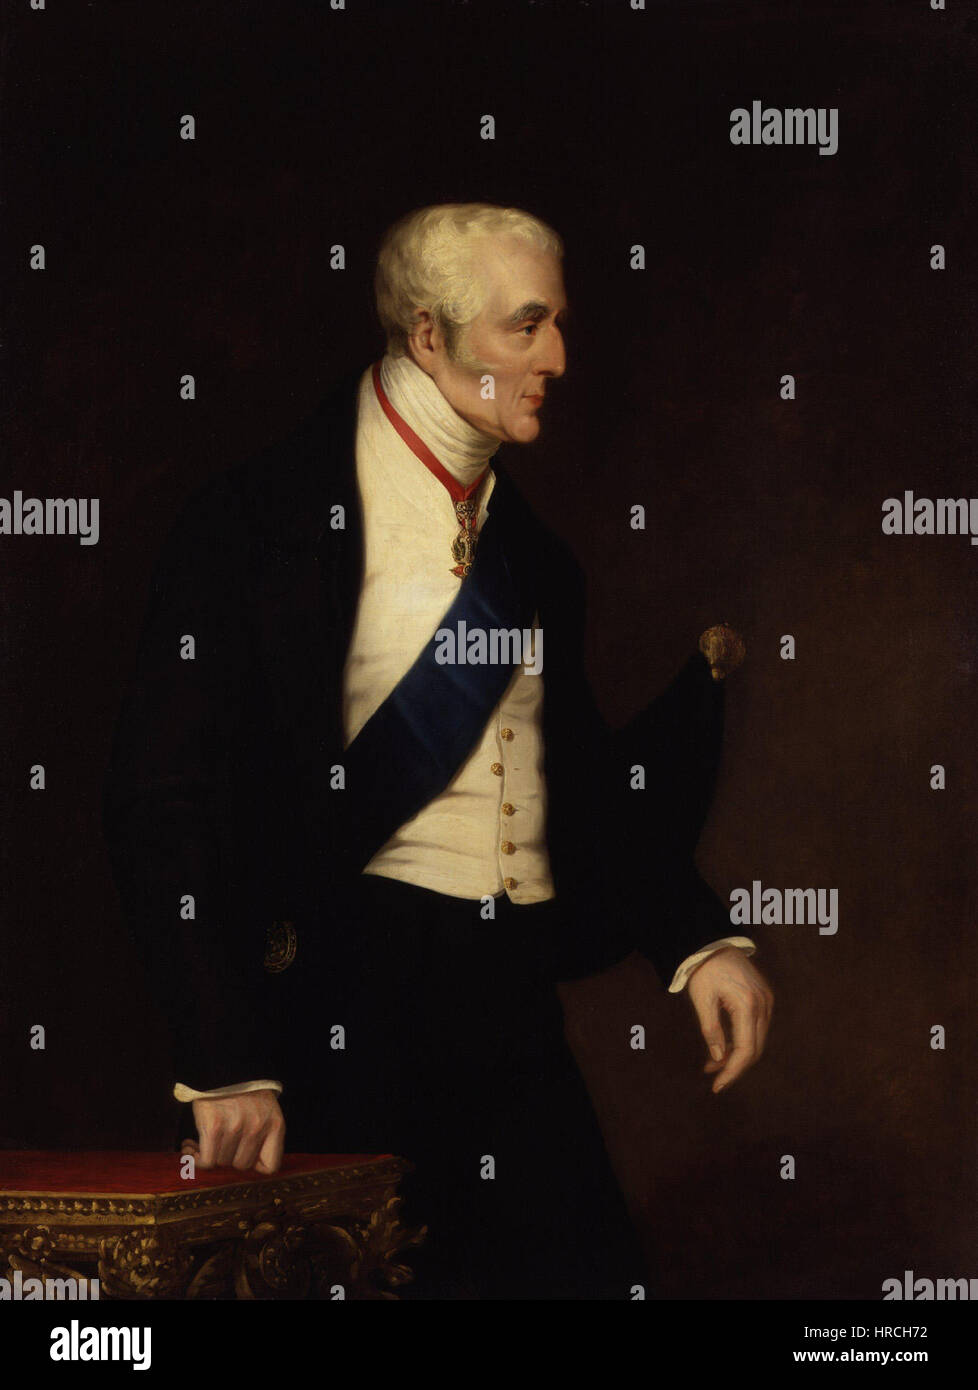 Arthur Wellesley, 1st Duke of Wellington by Alfred, Count D'Orsay - Stock Image